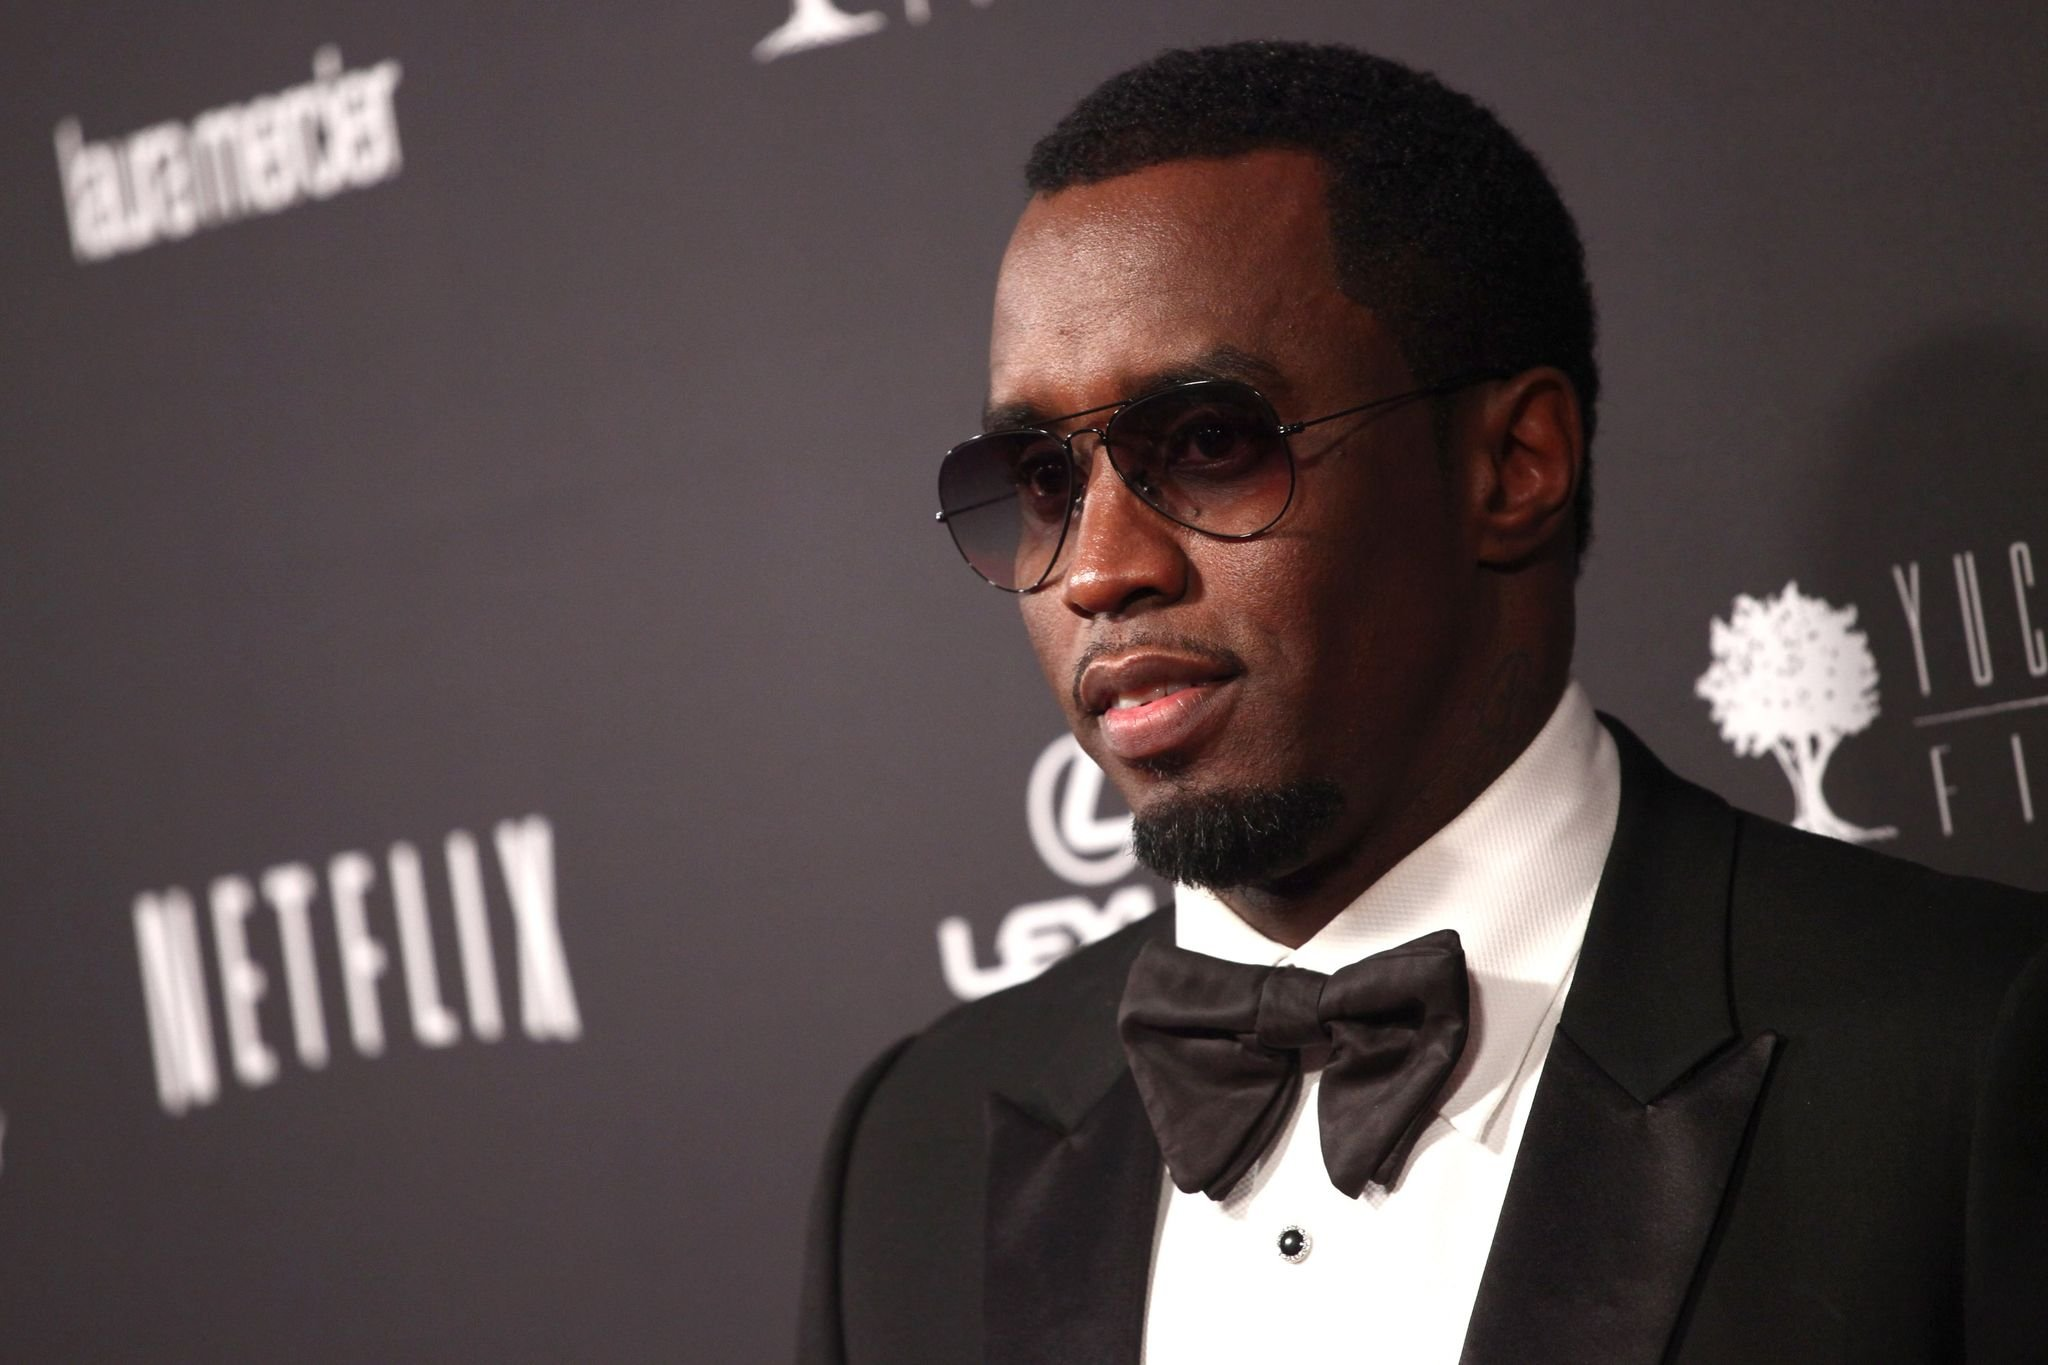 Sean Combs at the Weinstein Company's Golden Globe Awards after-party on January 12, 2014 in Beverly Hills, California | Photo: Getty Images